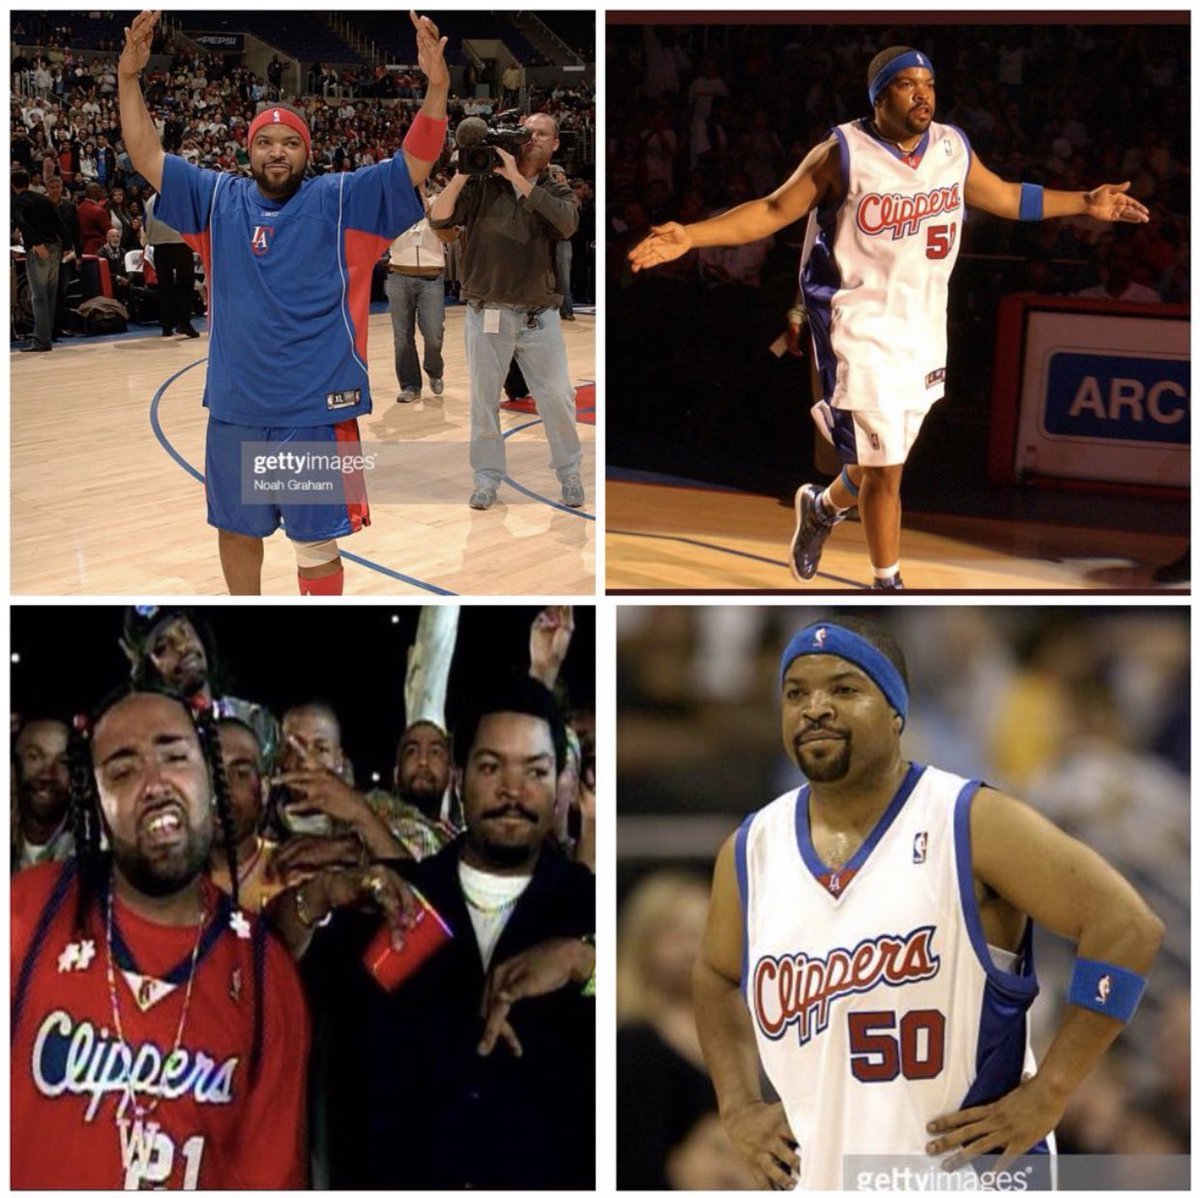 Ice Cube On Twitter Stop Lying To The People If I Didn T Play In This Little Charity Game The Dippers Would Have A Cent To Give To The Kids We Lost The